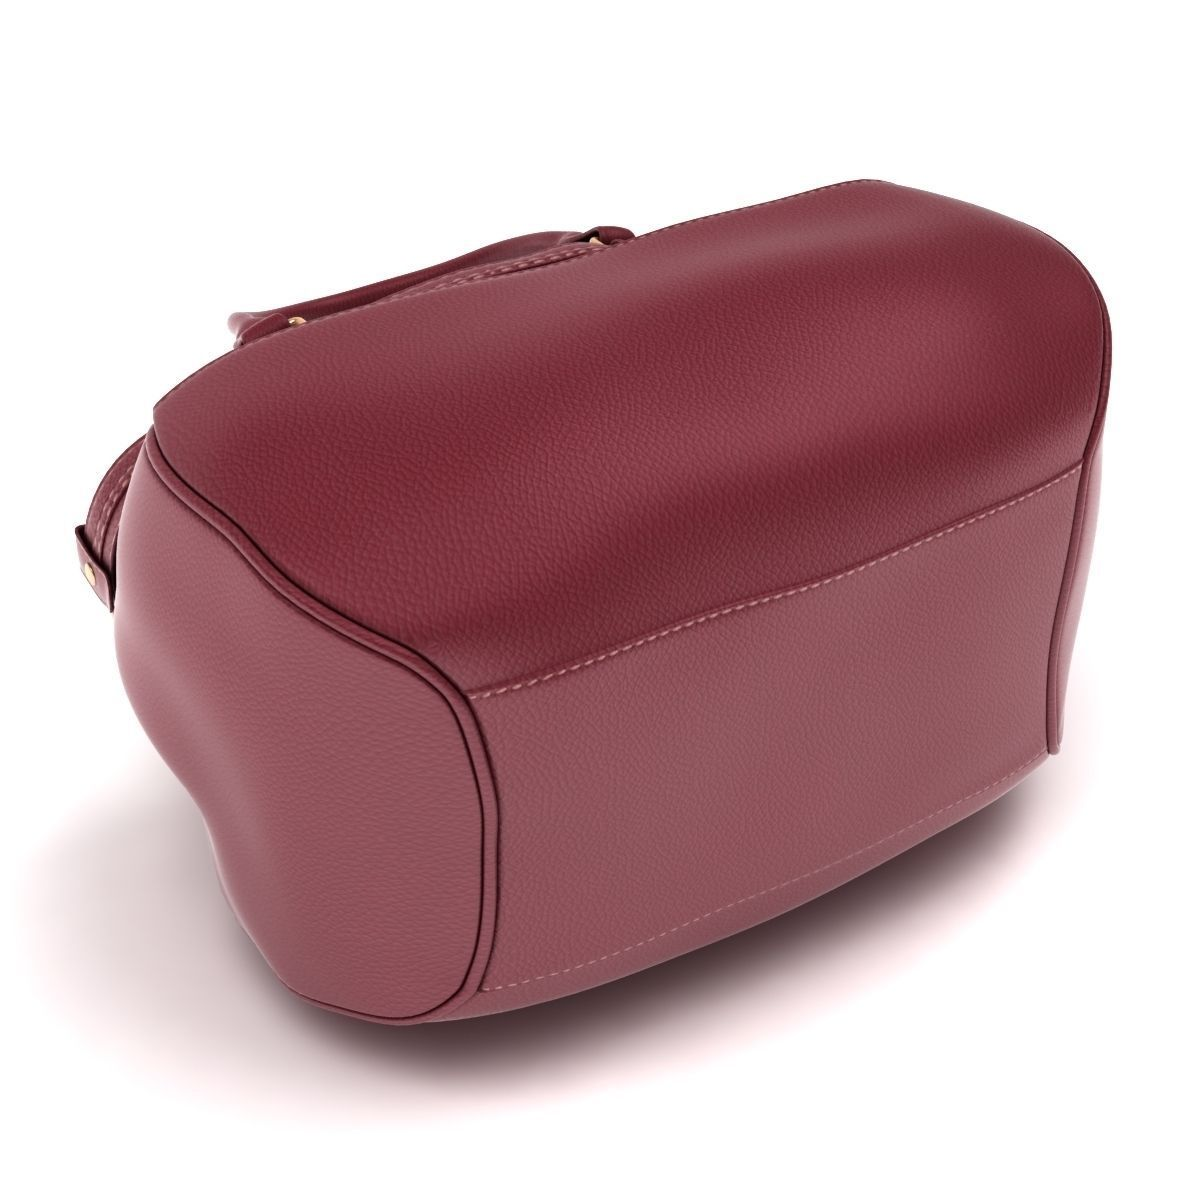 63225d3251 ... ladies hand bag 03 3d model max obj mtl 3ds fbx c4d lwo lw lws 7 ...